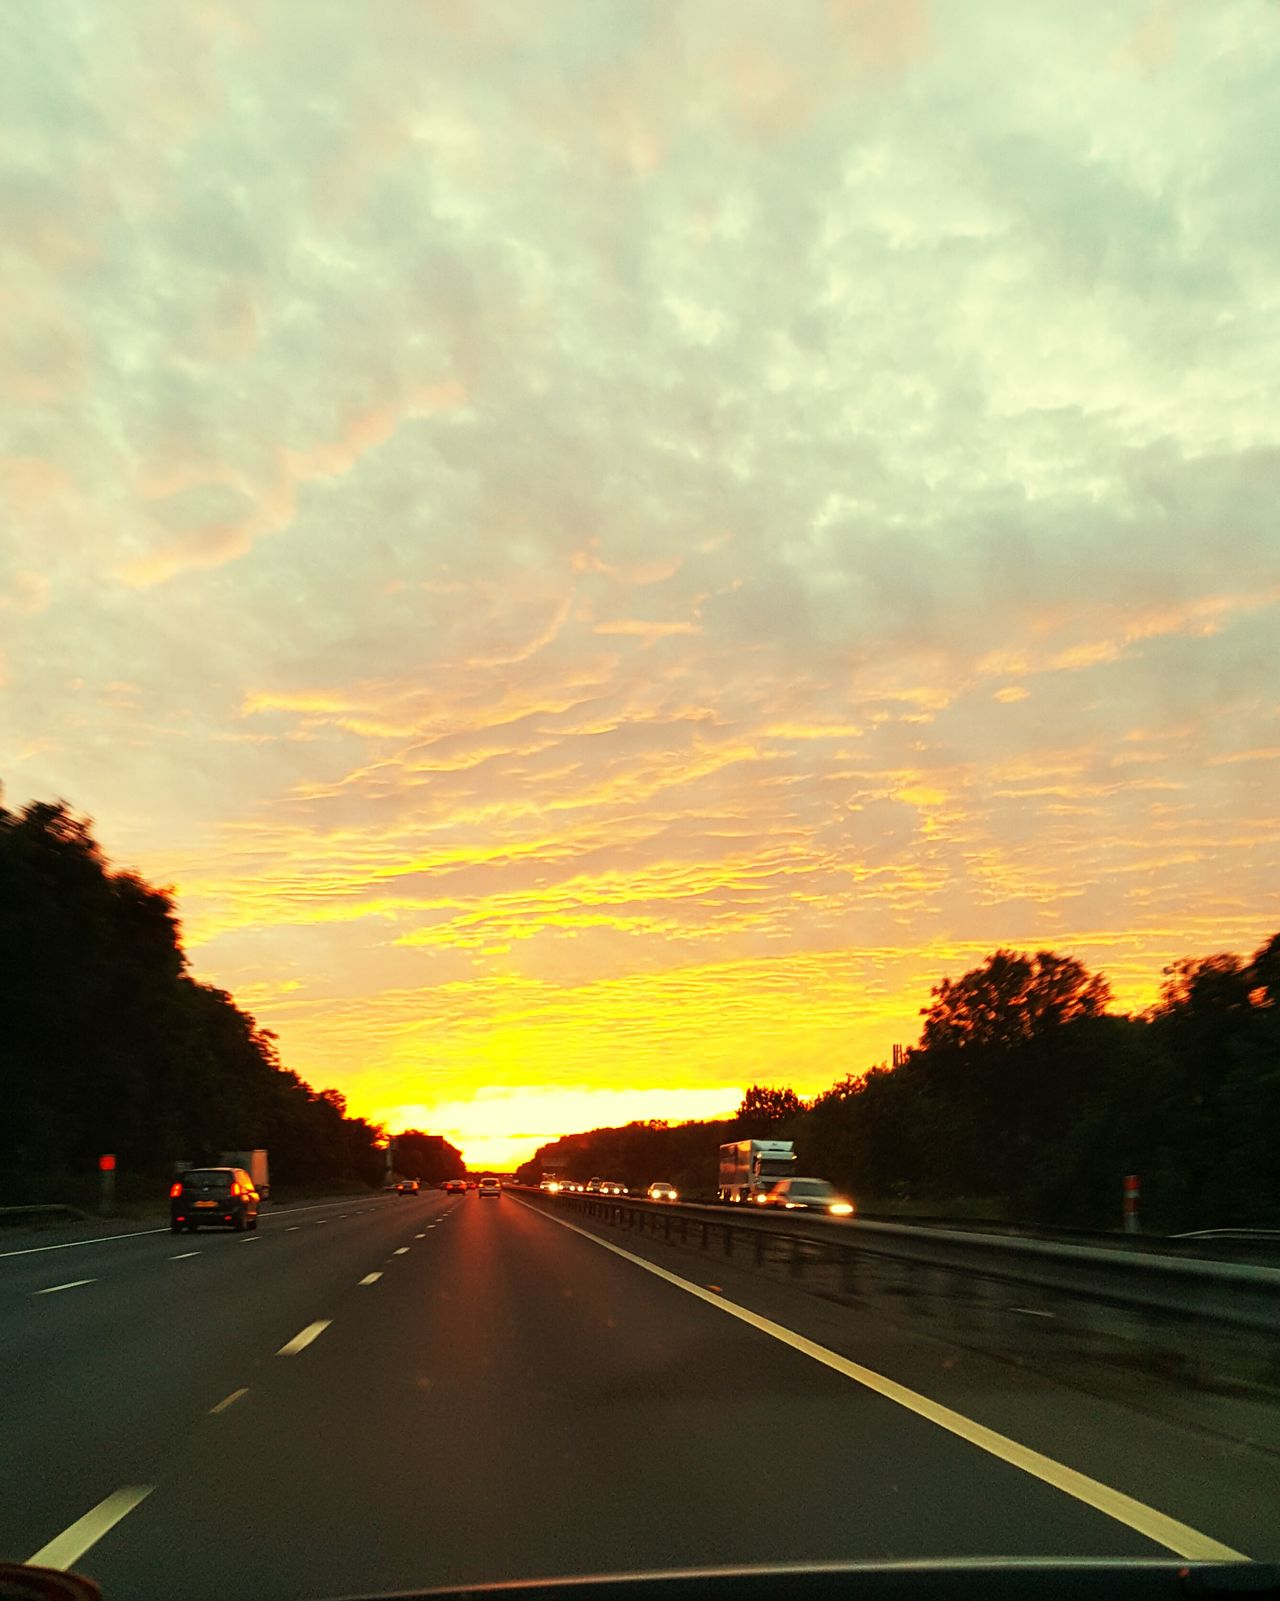 Deceptively Simple Photography Sunset Scenery💋 Hello World Scenery Shots JourneyphotographyBeautiful Sunset Travel Photography Motorway The OO Mission